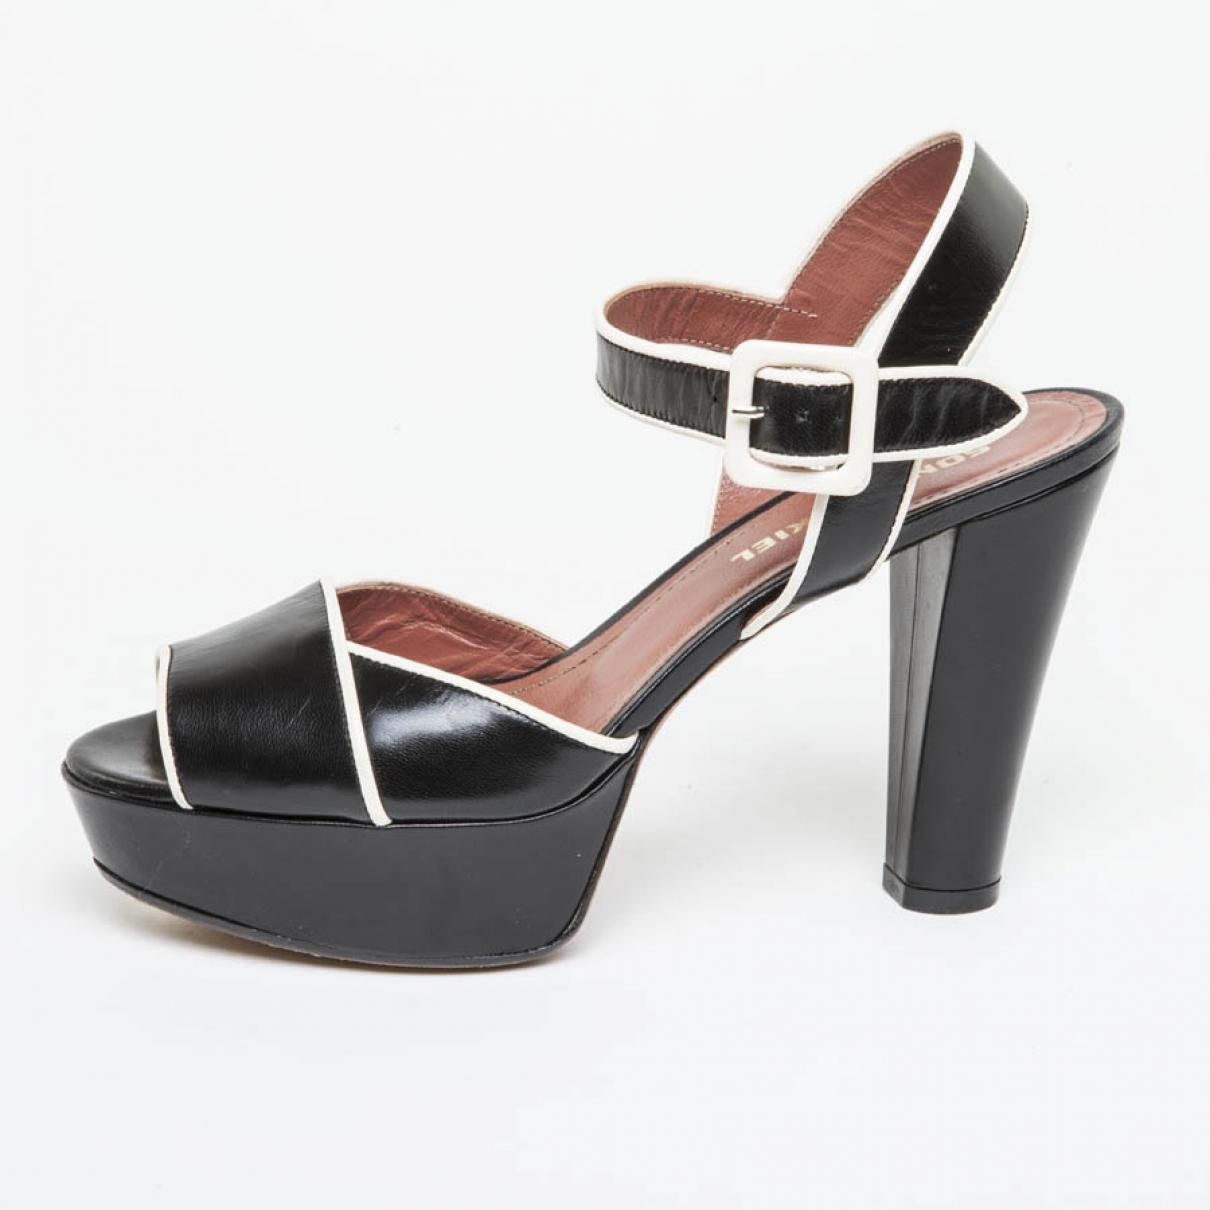 Pre-owned - Leather sandals Sonia Rykiel B1JT8Aw39W